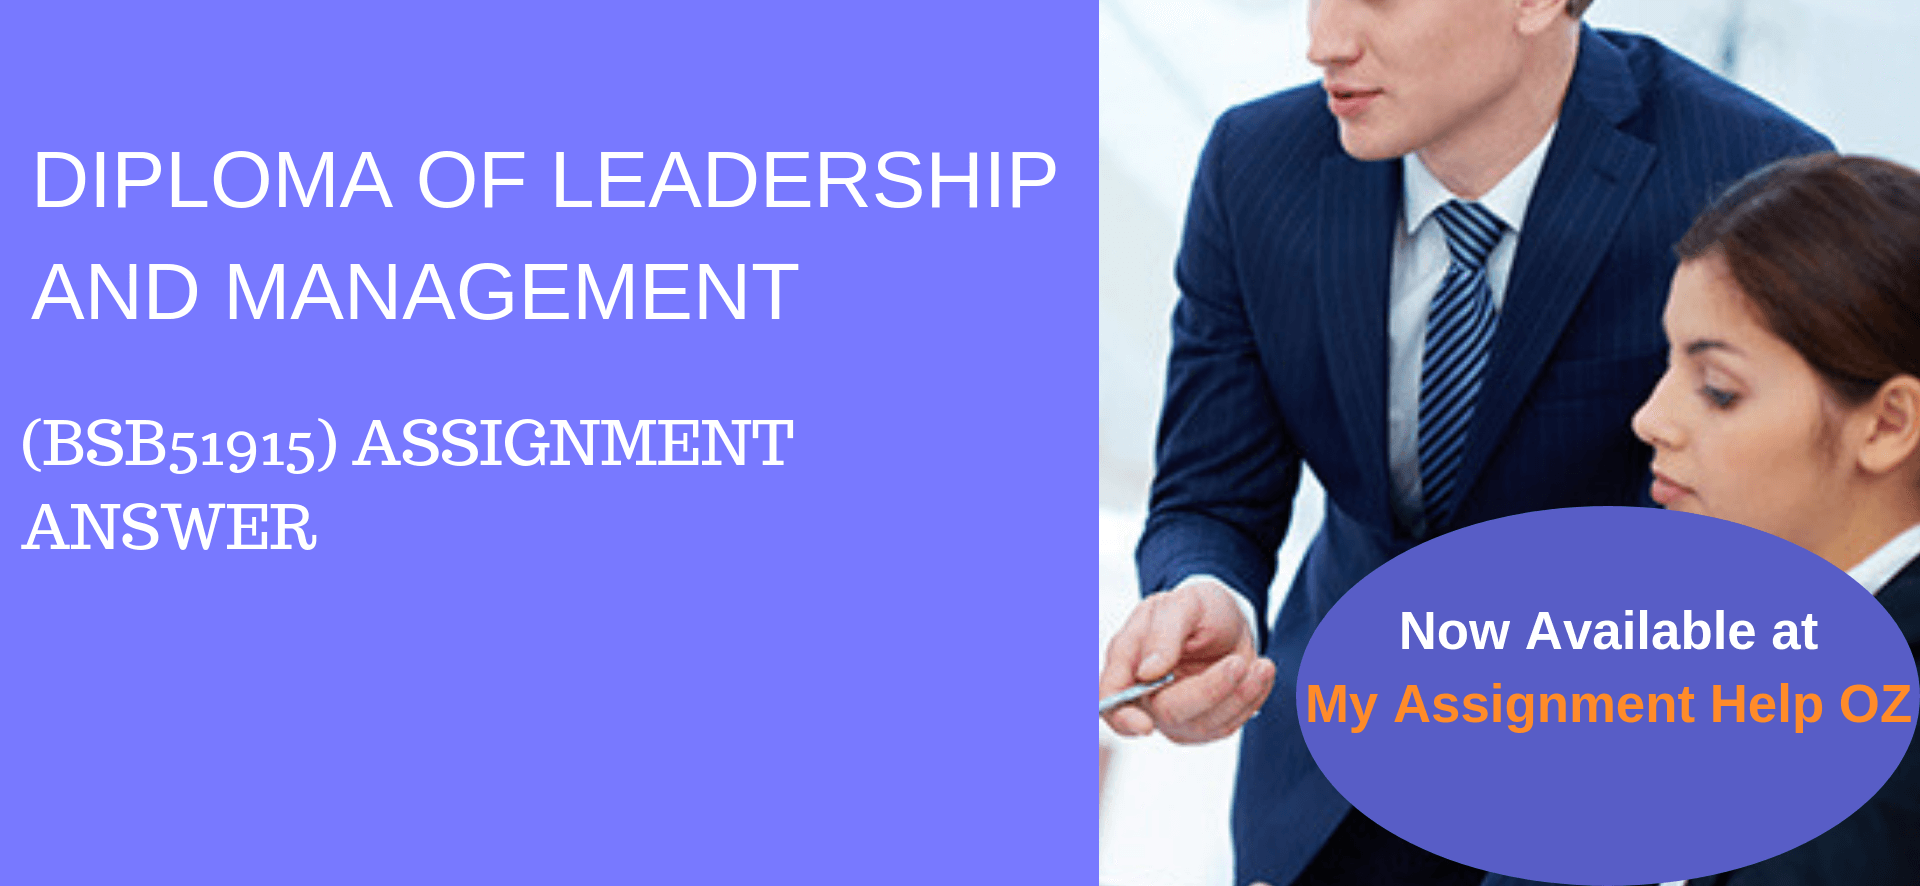 BSB51915 diploma of leadership and management assignment answers